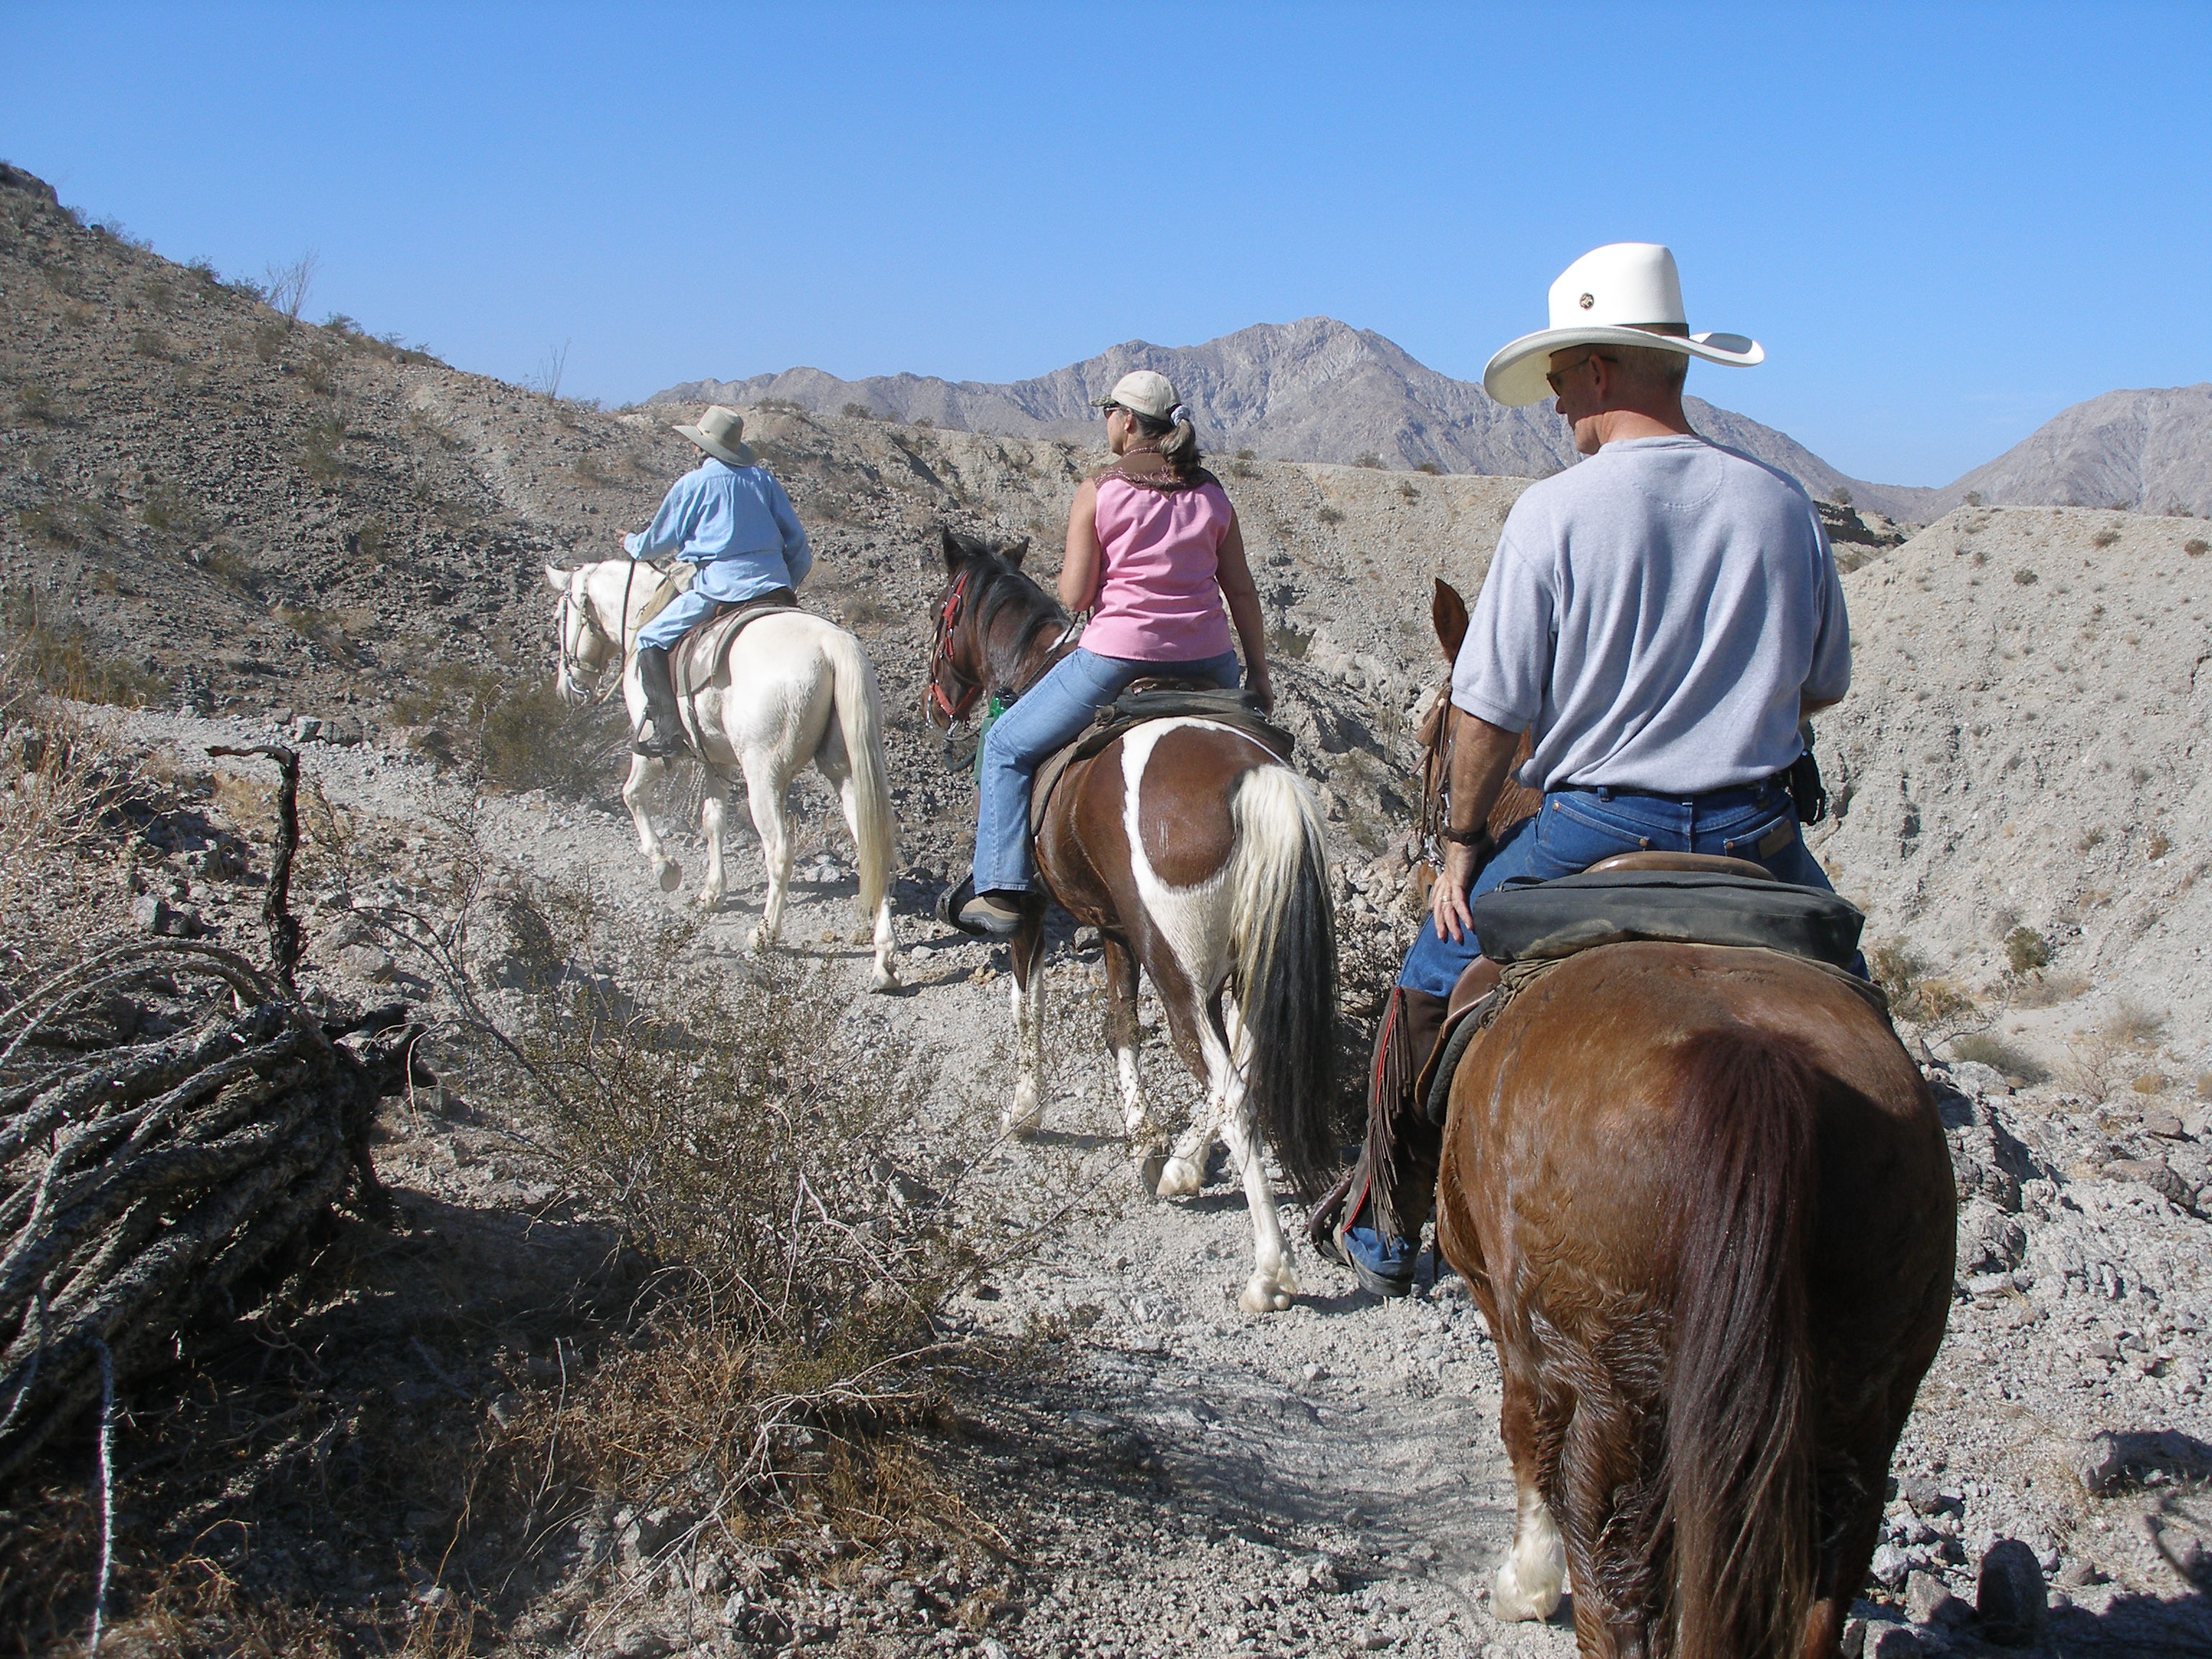 Horseback riders at Cahuilla